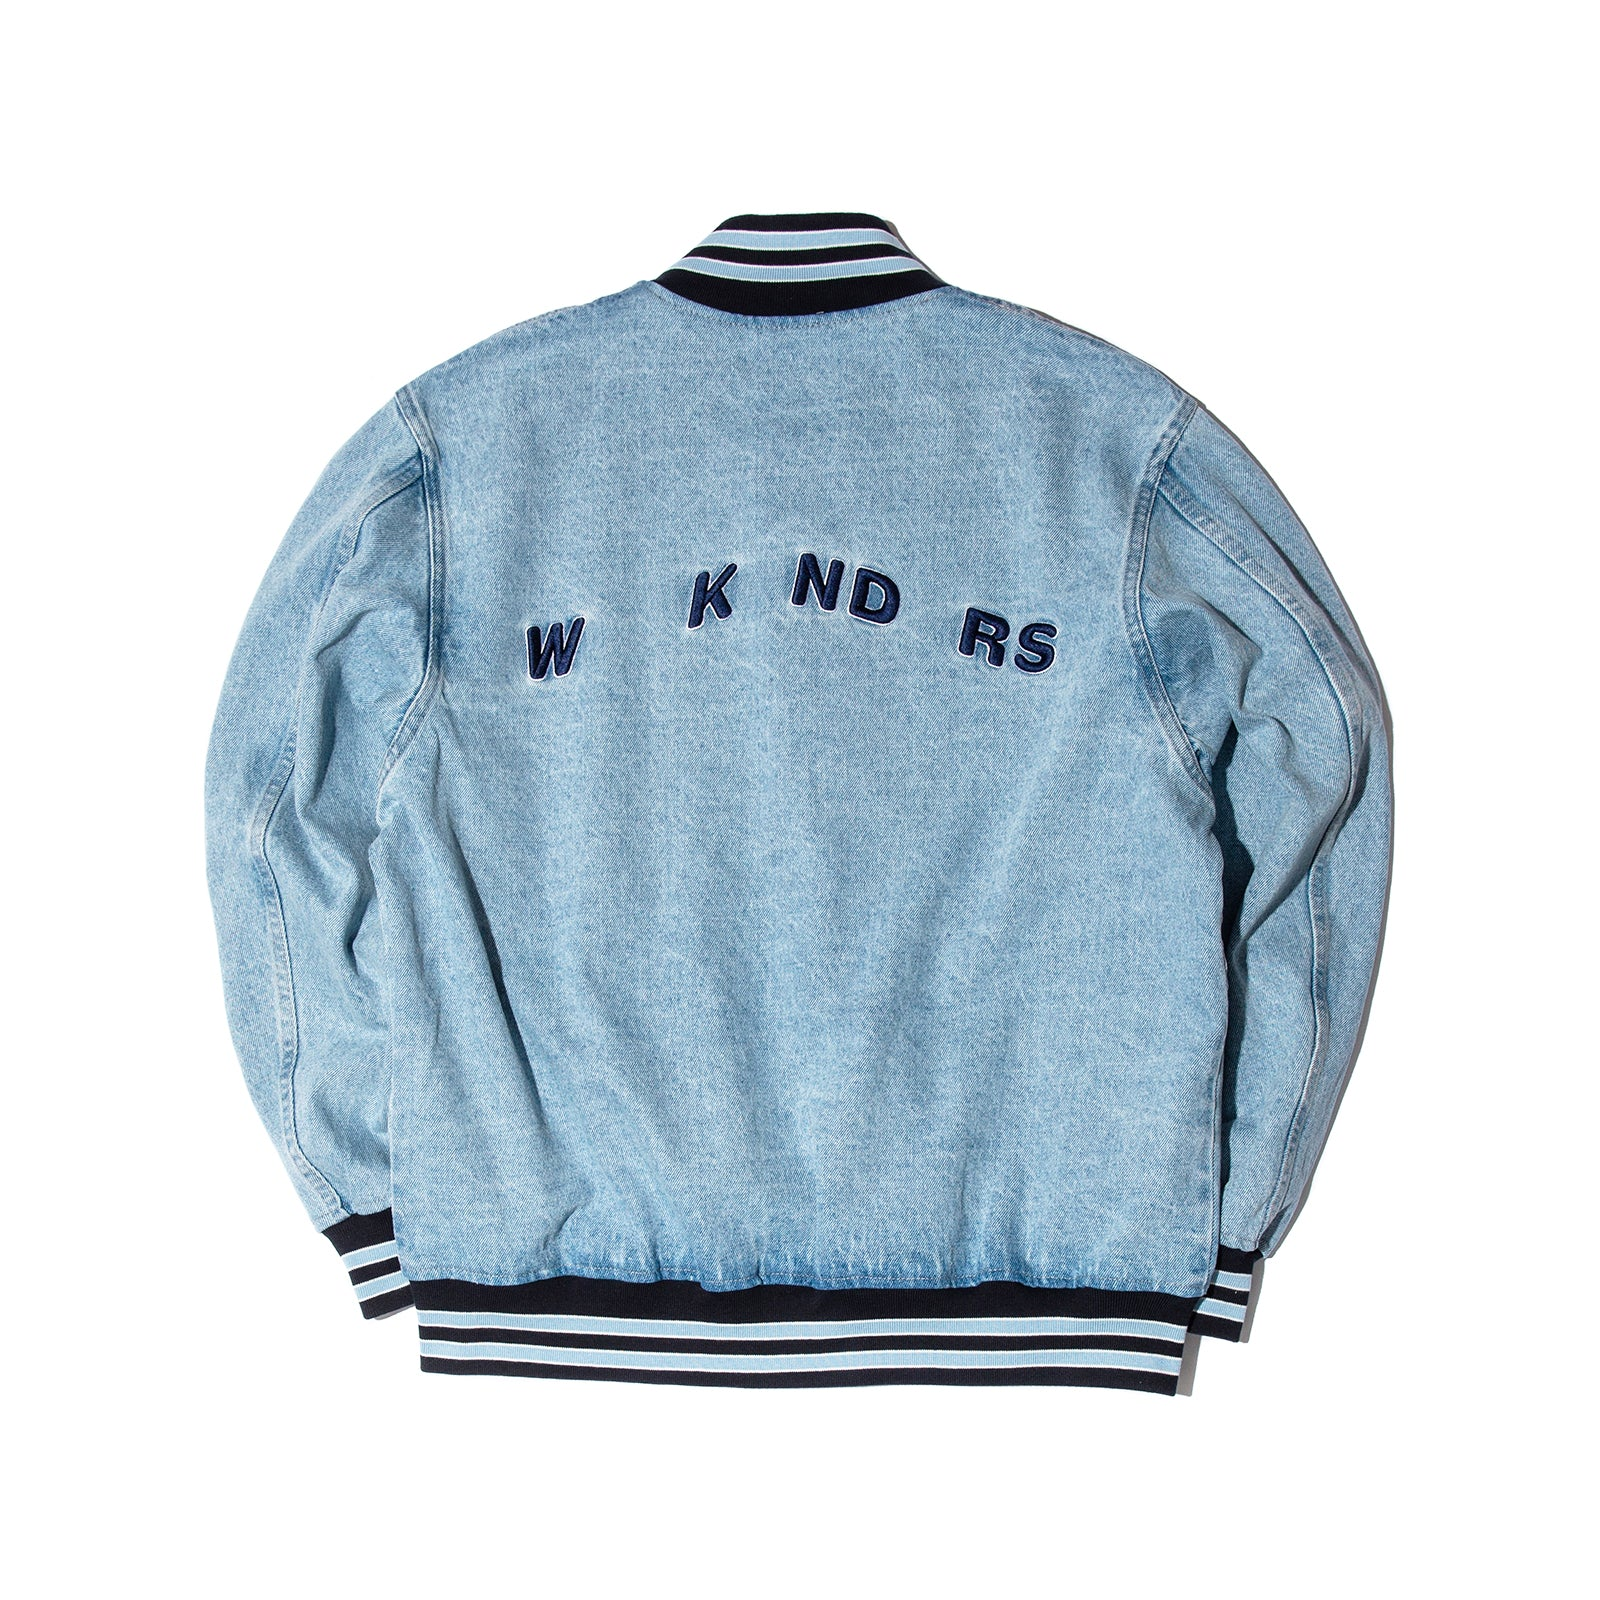 RETRO STADIUM JACKET (L.DENIM)